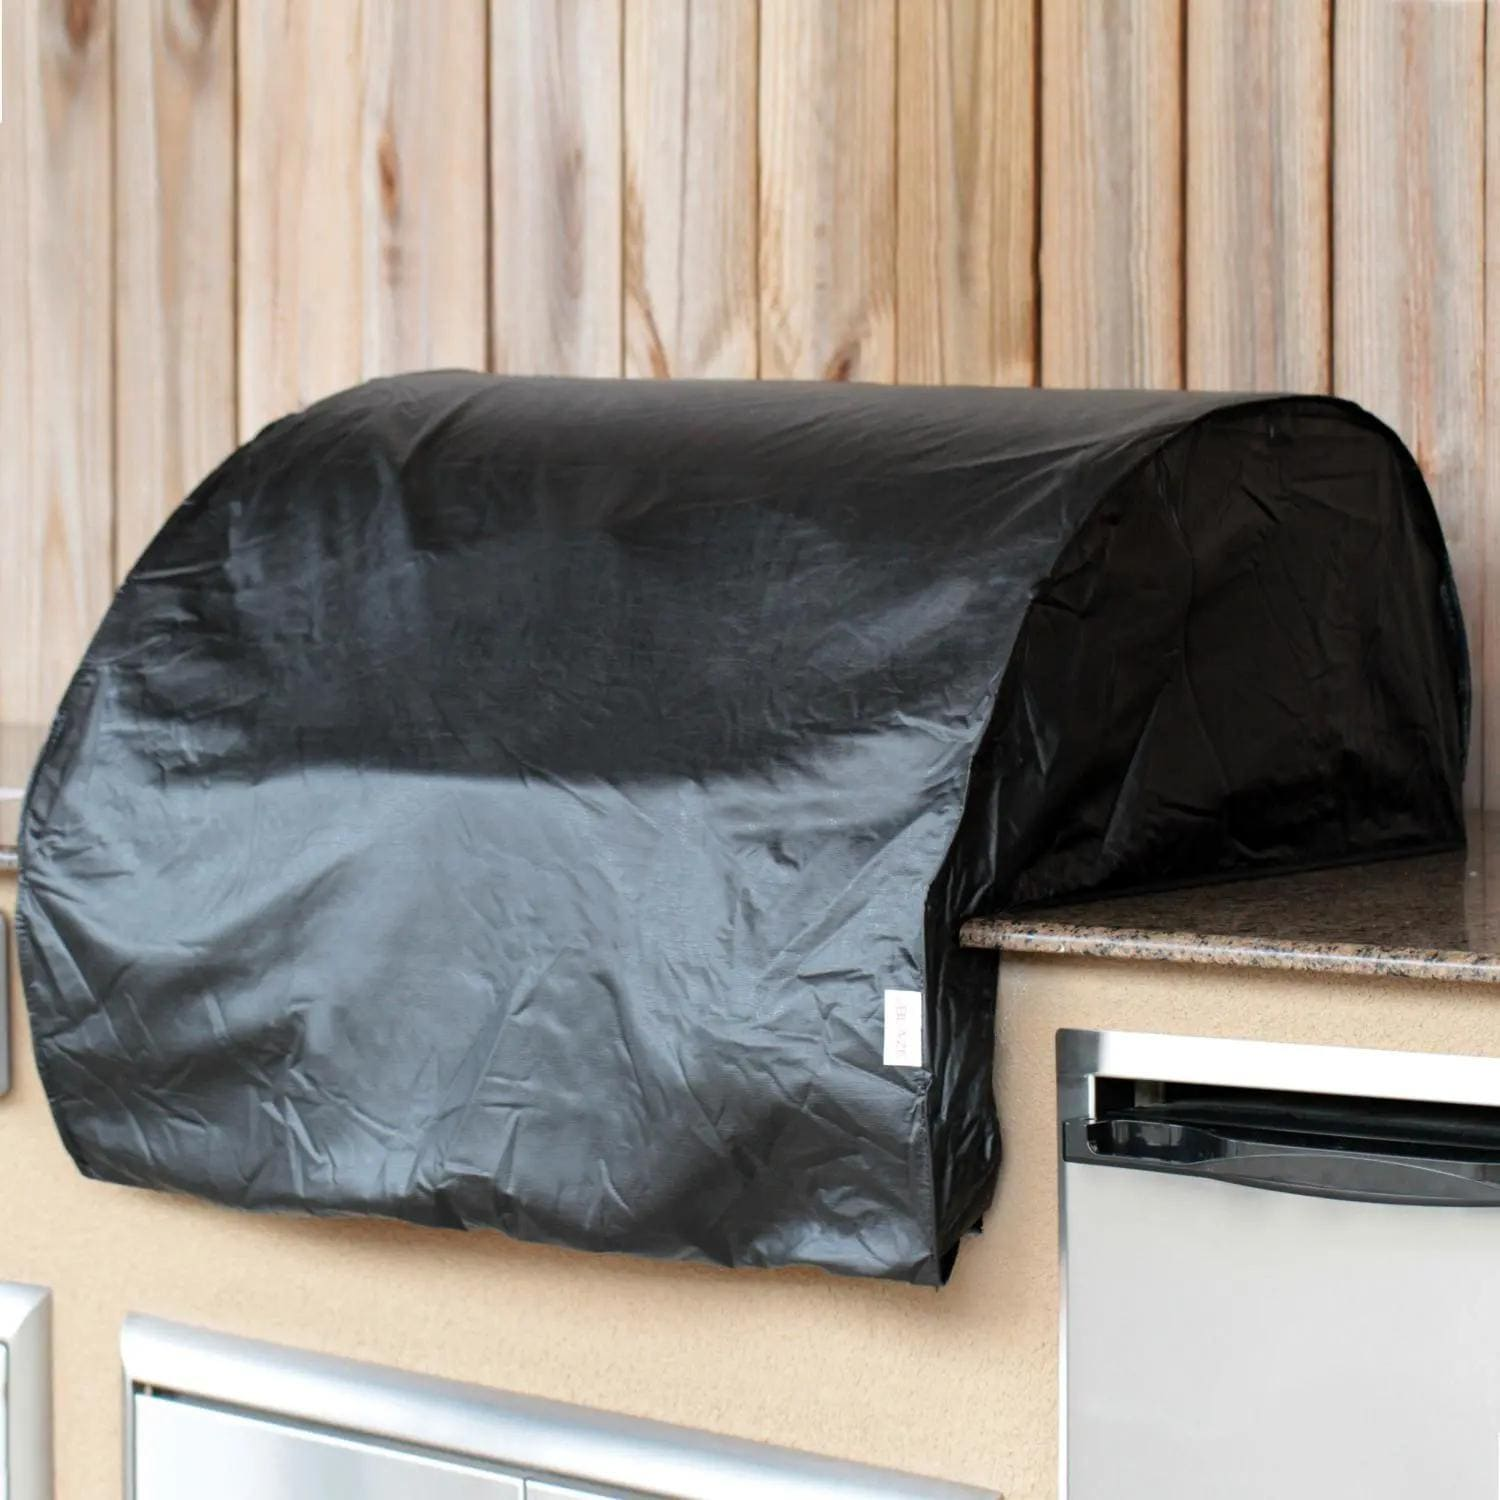 Blaze Grill Cover For Prelude LBM & Premium LTE 4-burner Gas & Charcoal Built-In Grills - 4BICV